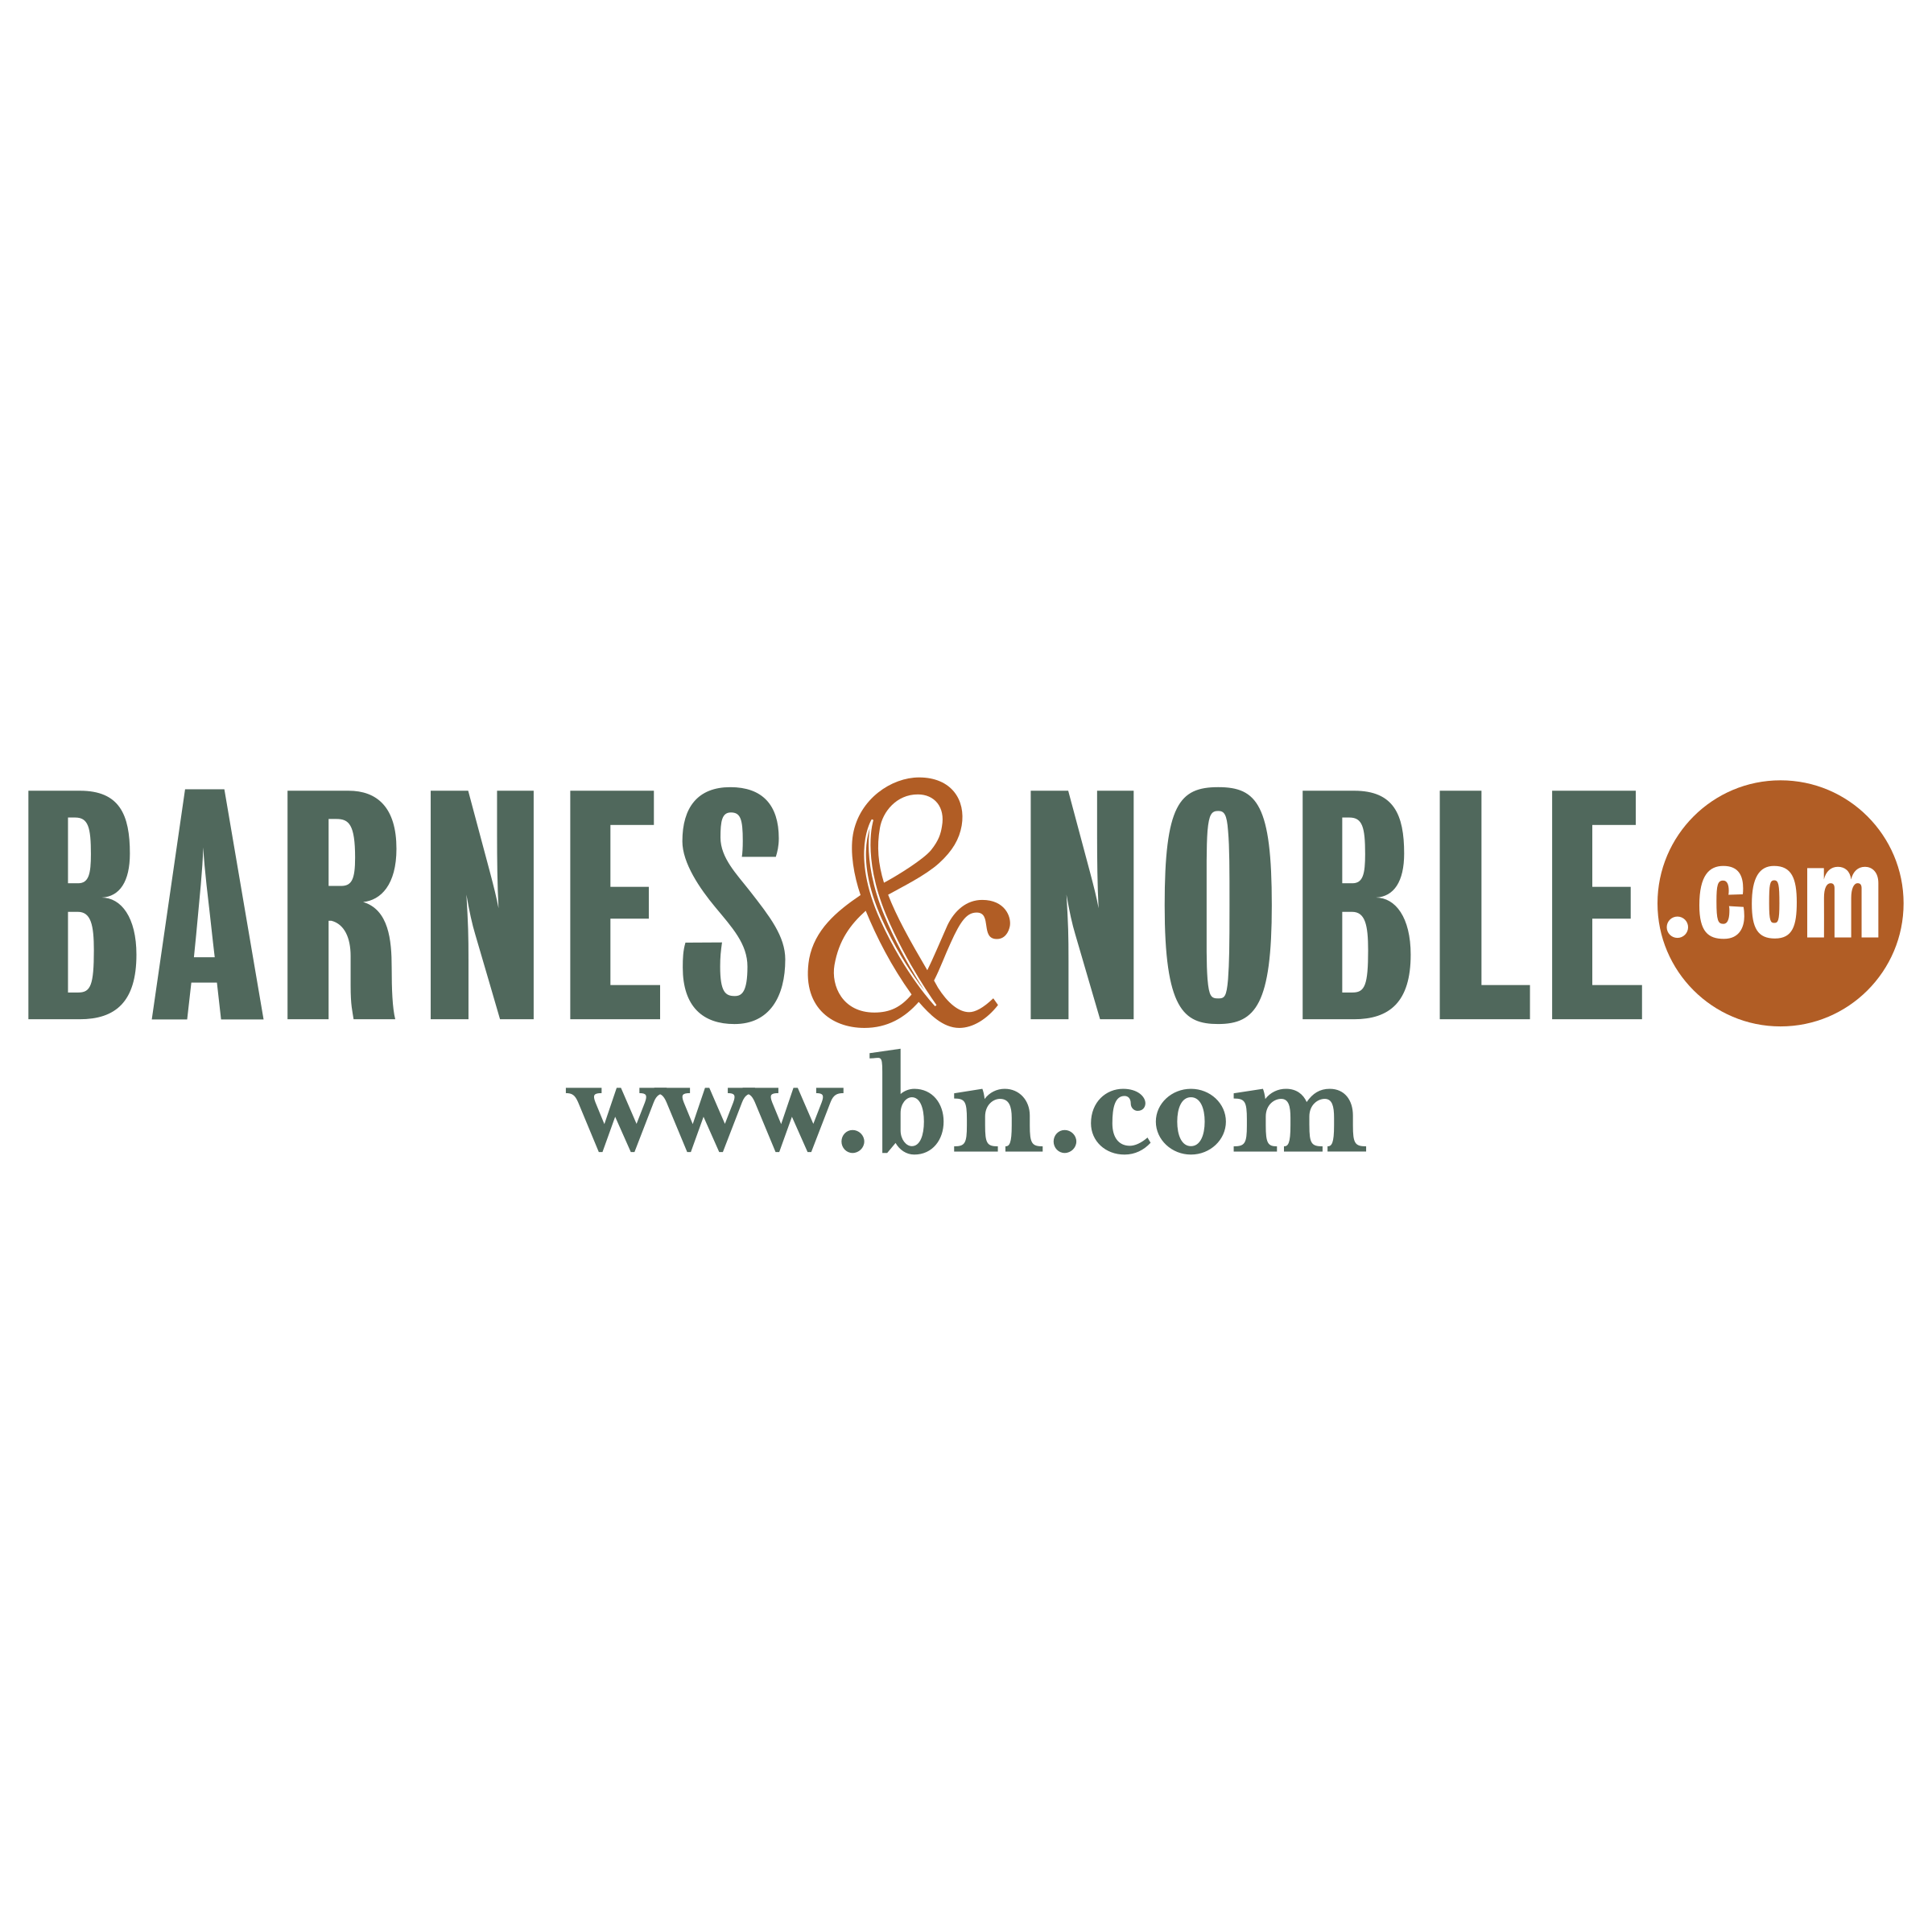 Barnes & noble logo png. Transparent svg vector freebie